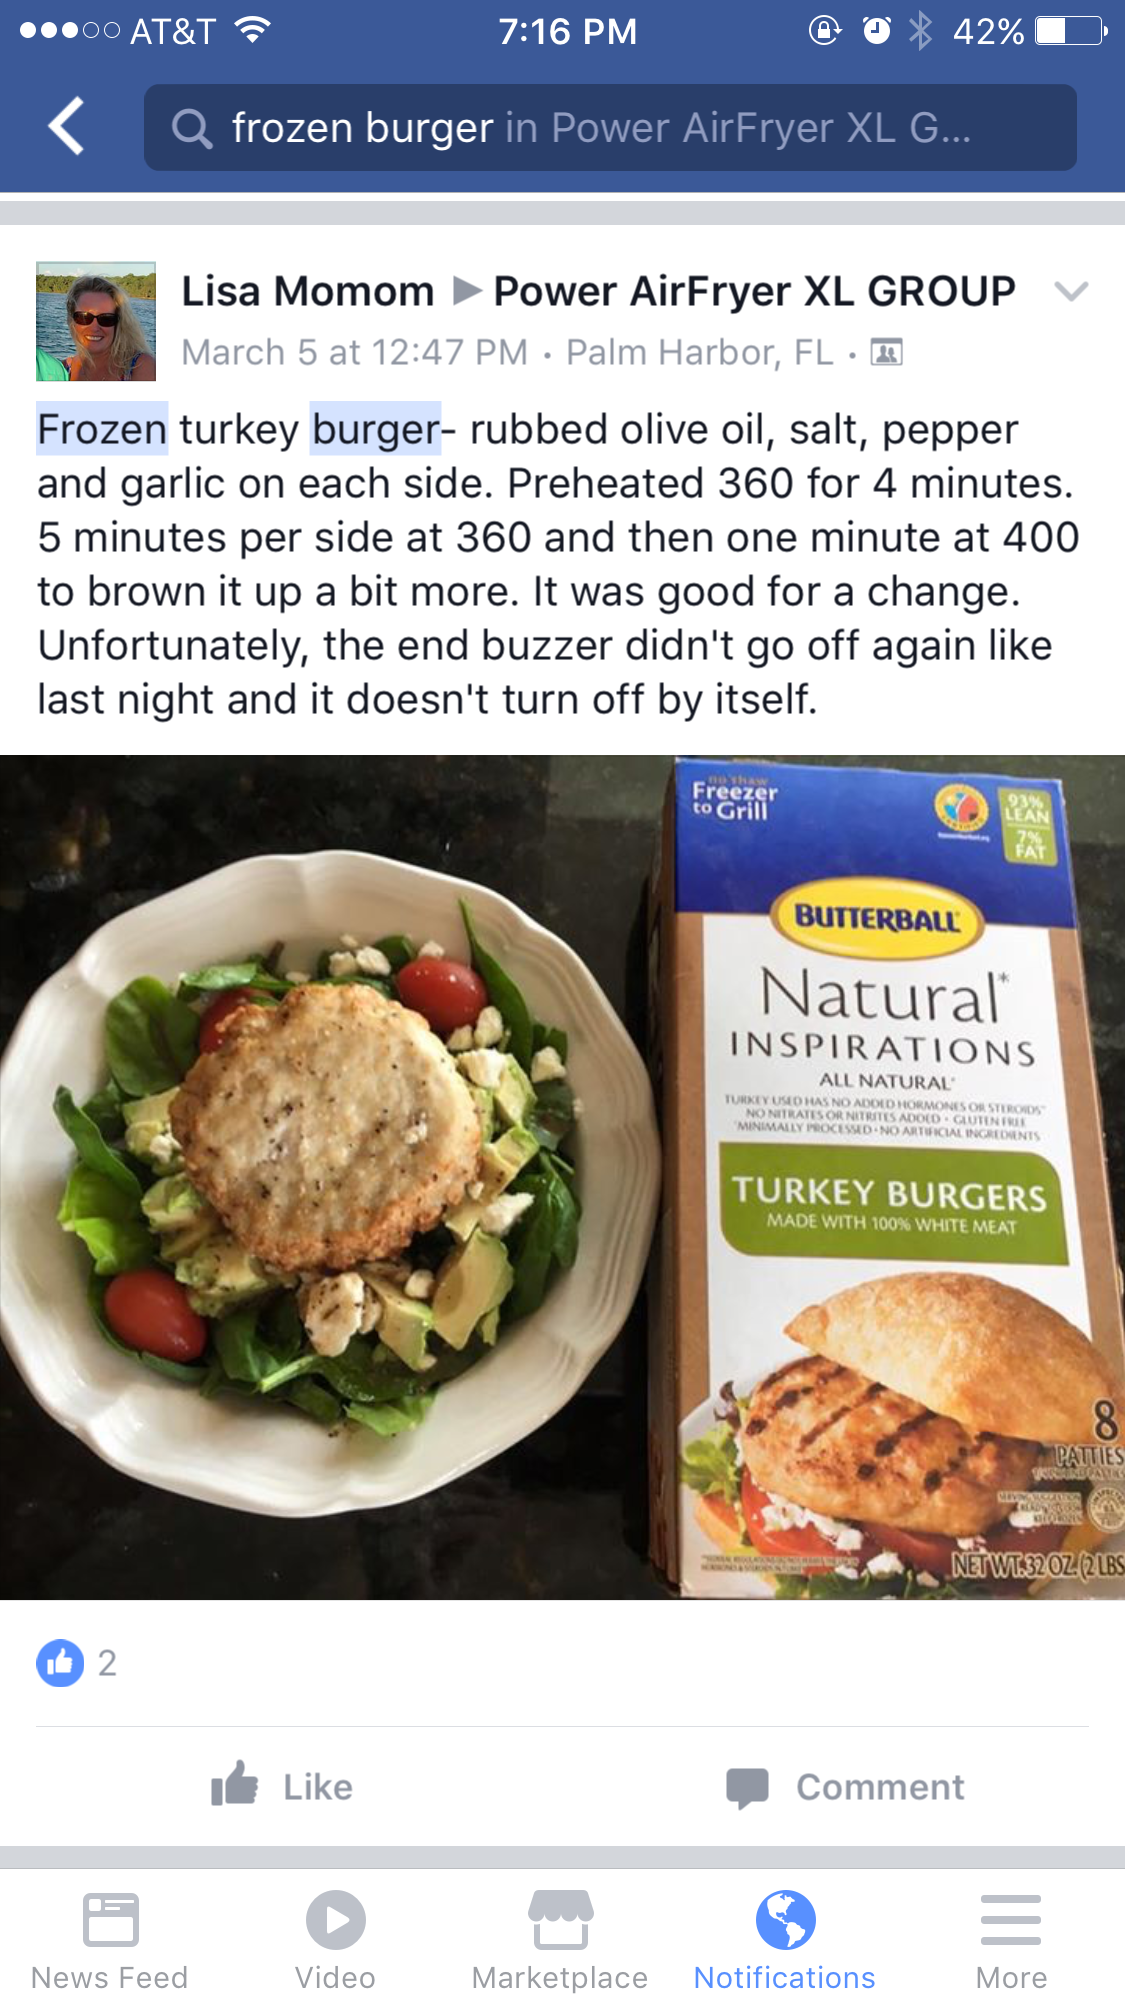 Pin by Cathy commerford on Air fryer in 2020 Stuffed